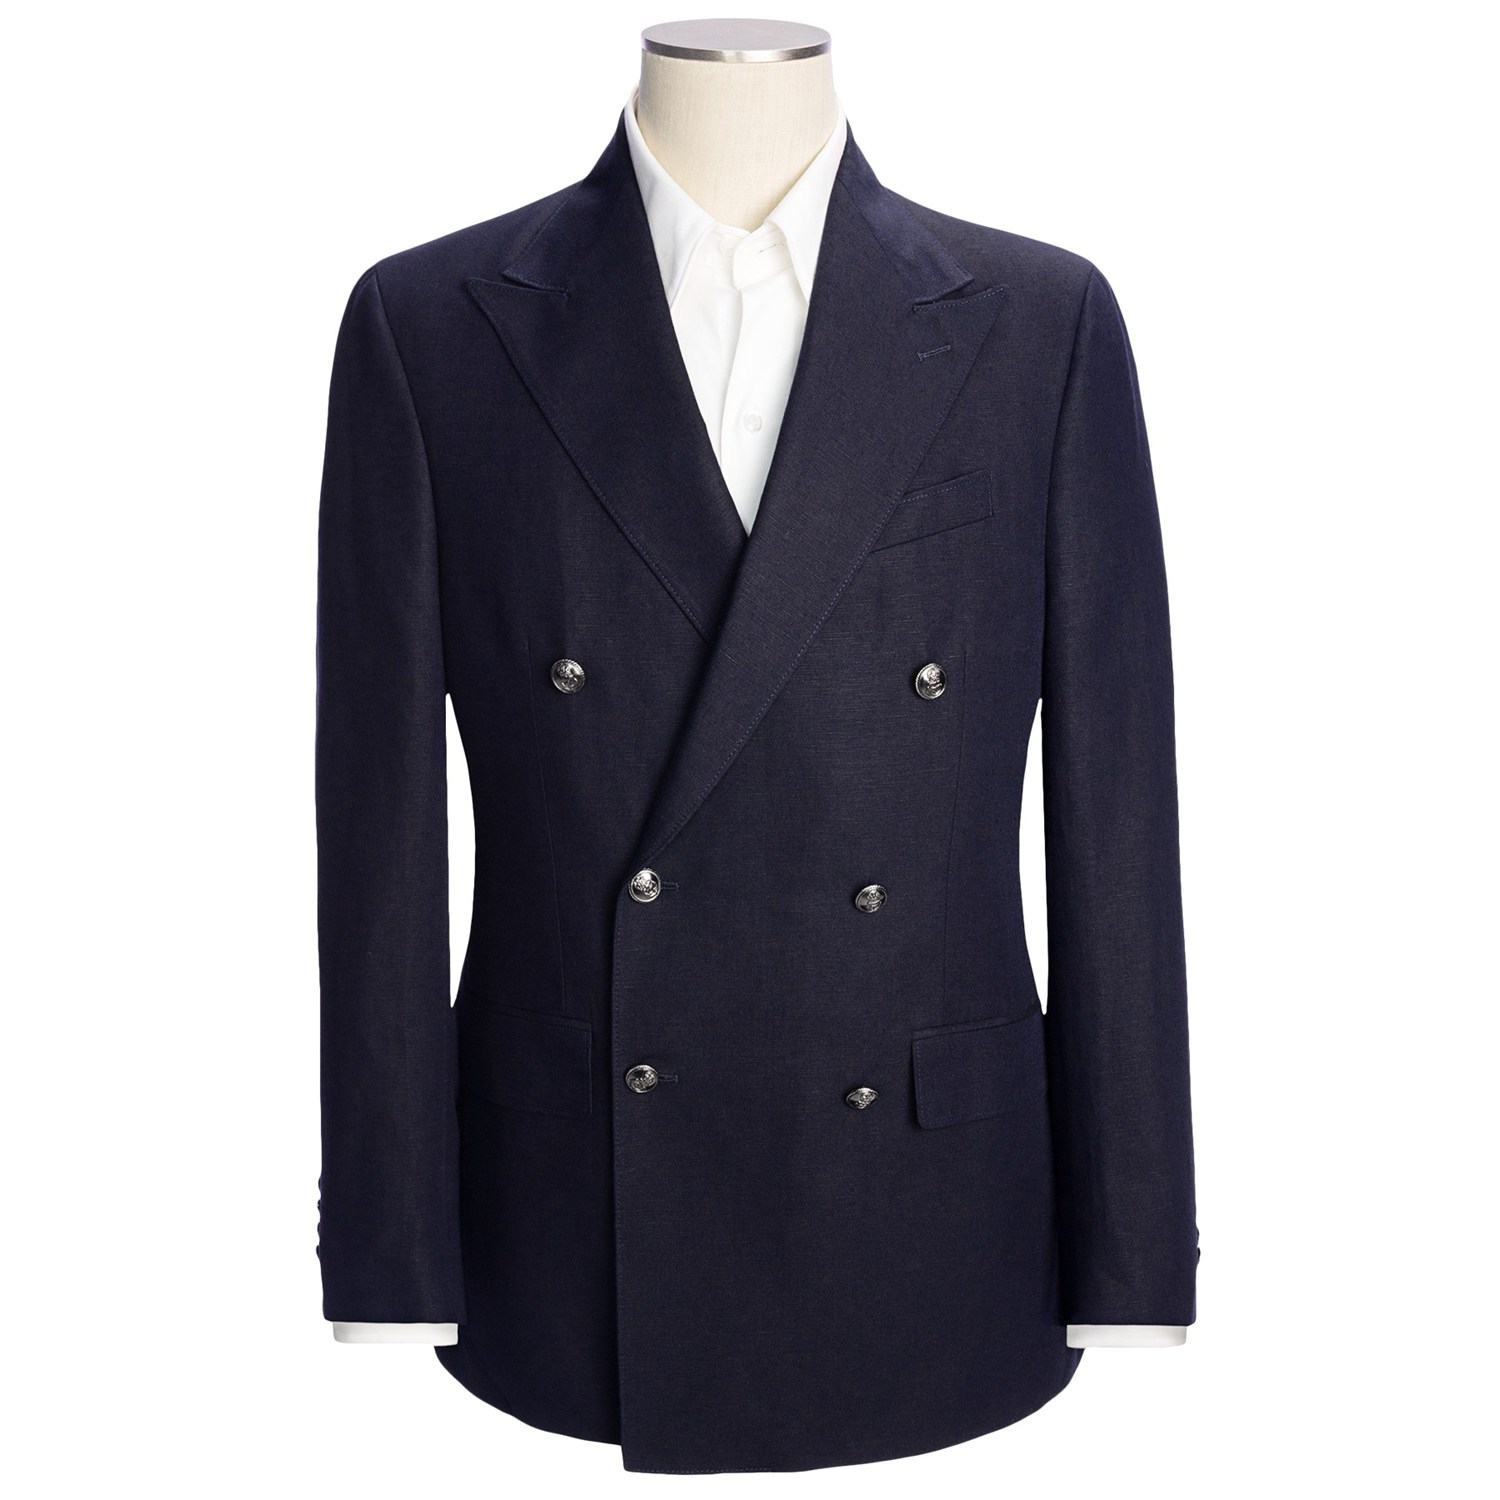 lands'-end-traditional-admiral-sport-coat-linen-cotton-for-men-in-true-navy~p~6583t_02~1500.2